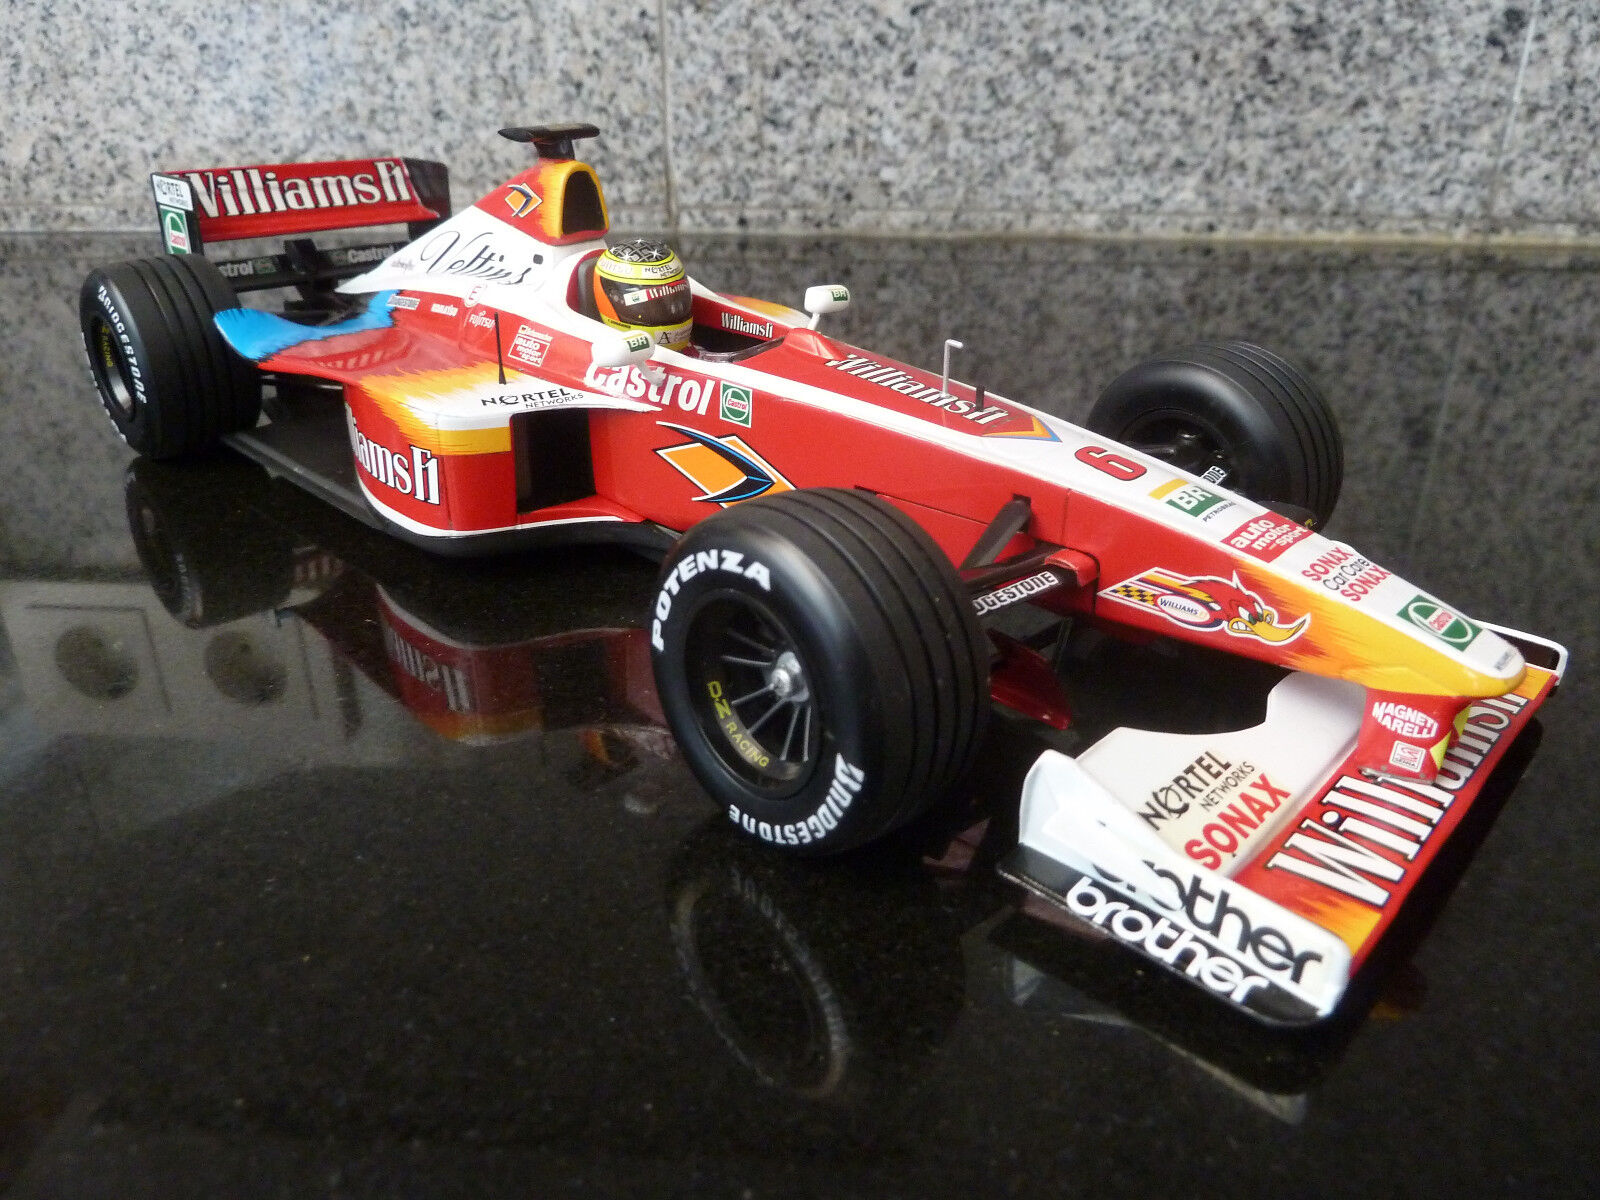 1 18 Minichamps, Williams FW21, R. Schumacher, Carart